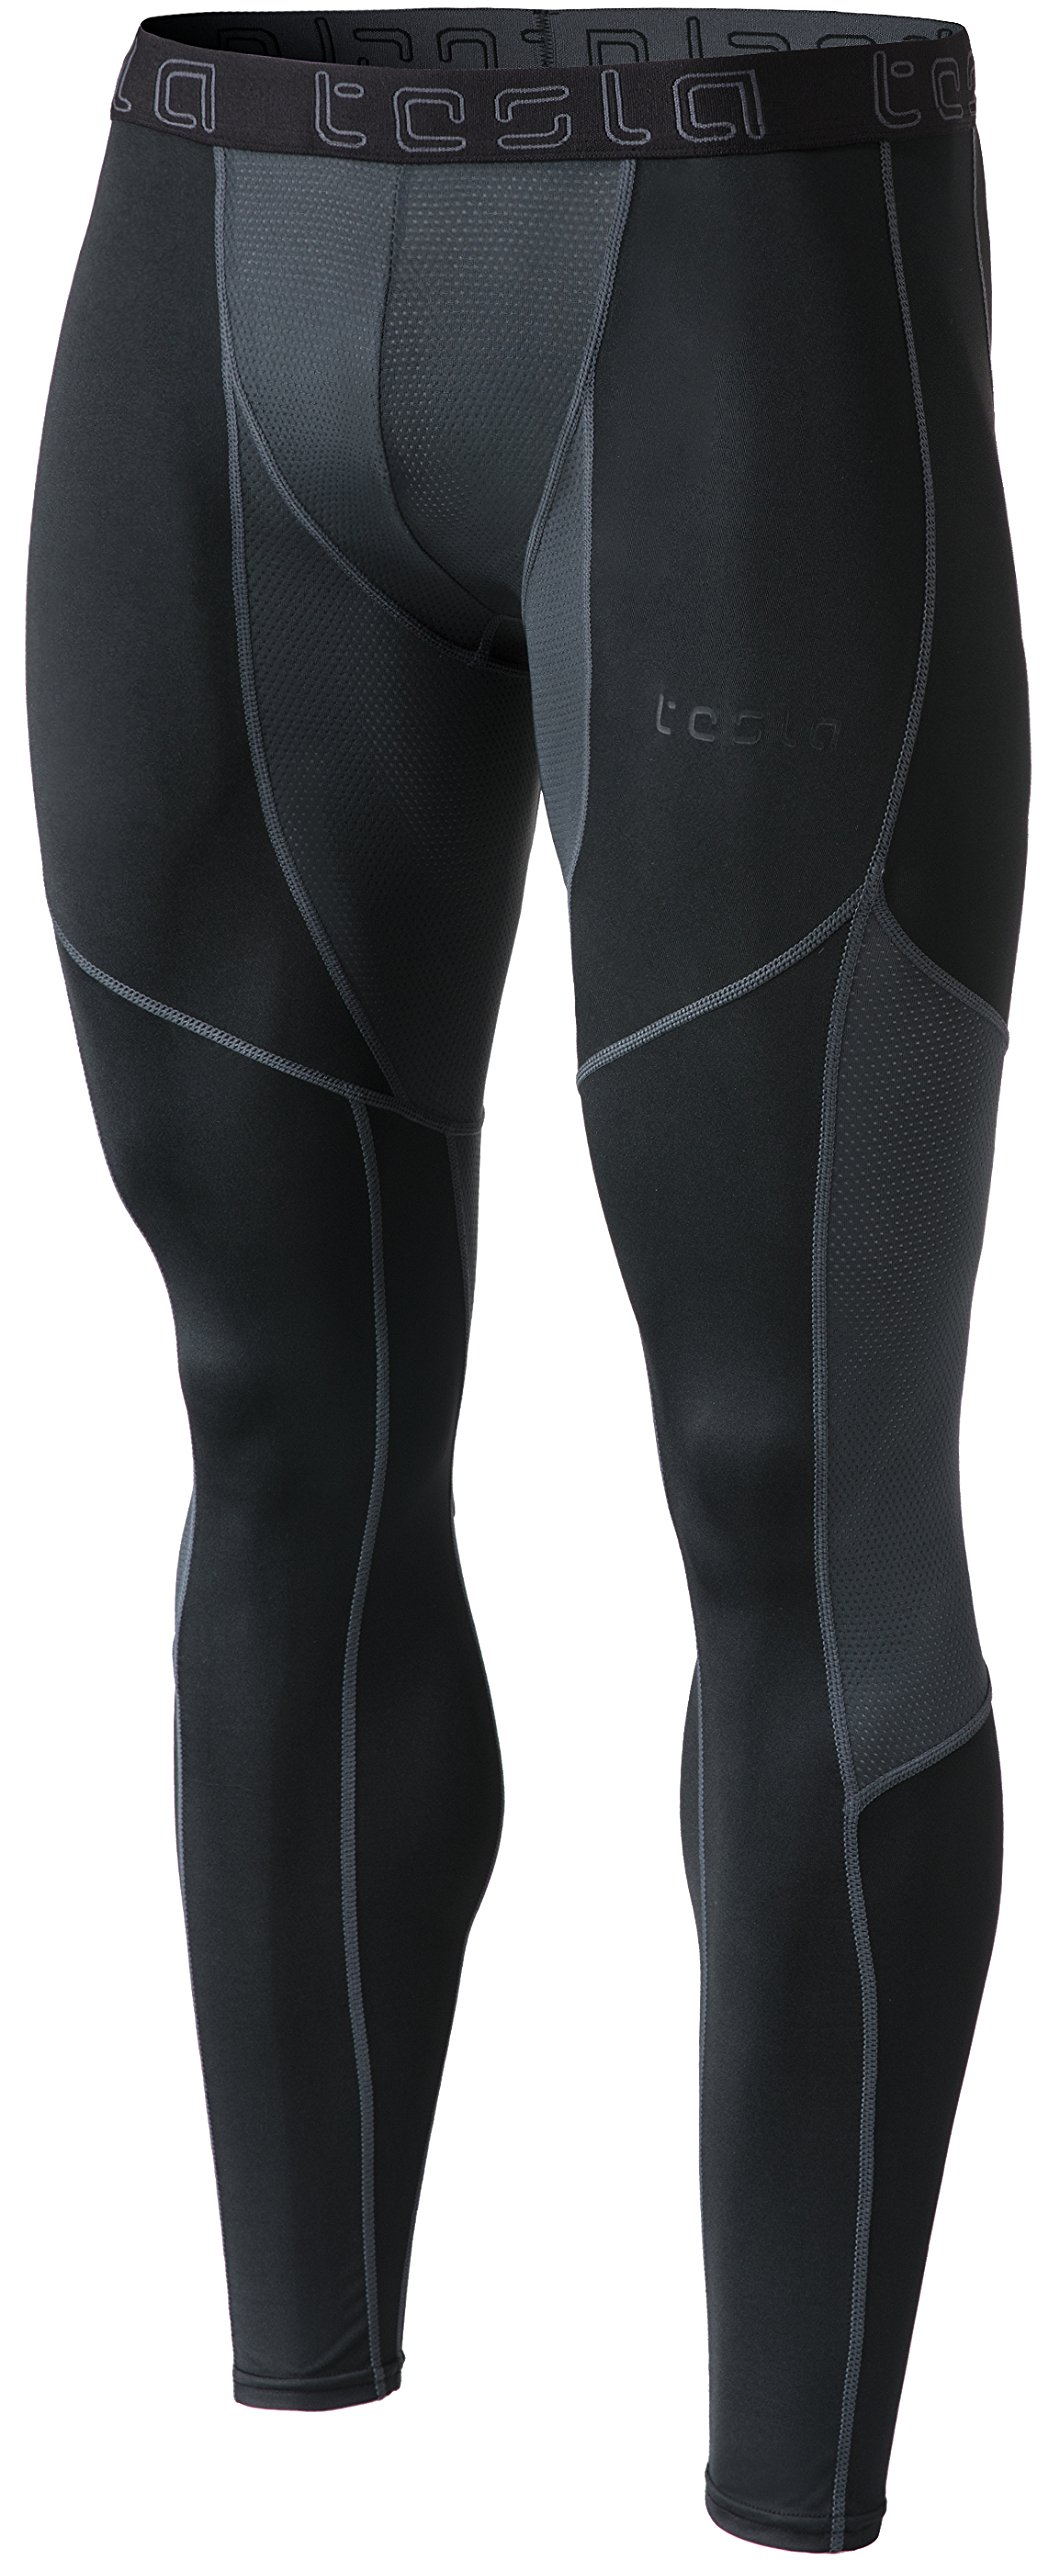 2dc67f8d8 TSLA Men's Mesh-Panel Compression Pants Baselayer Cool Dry Sports Tights  Leggings MUP79 product image